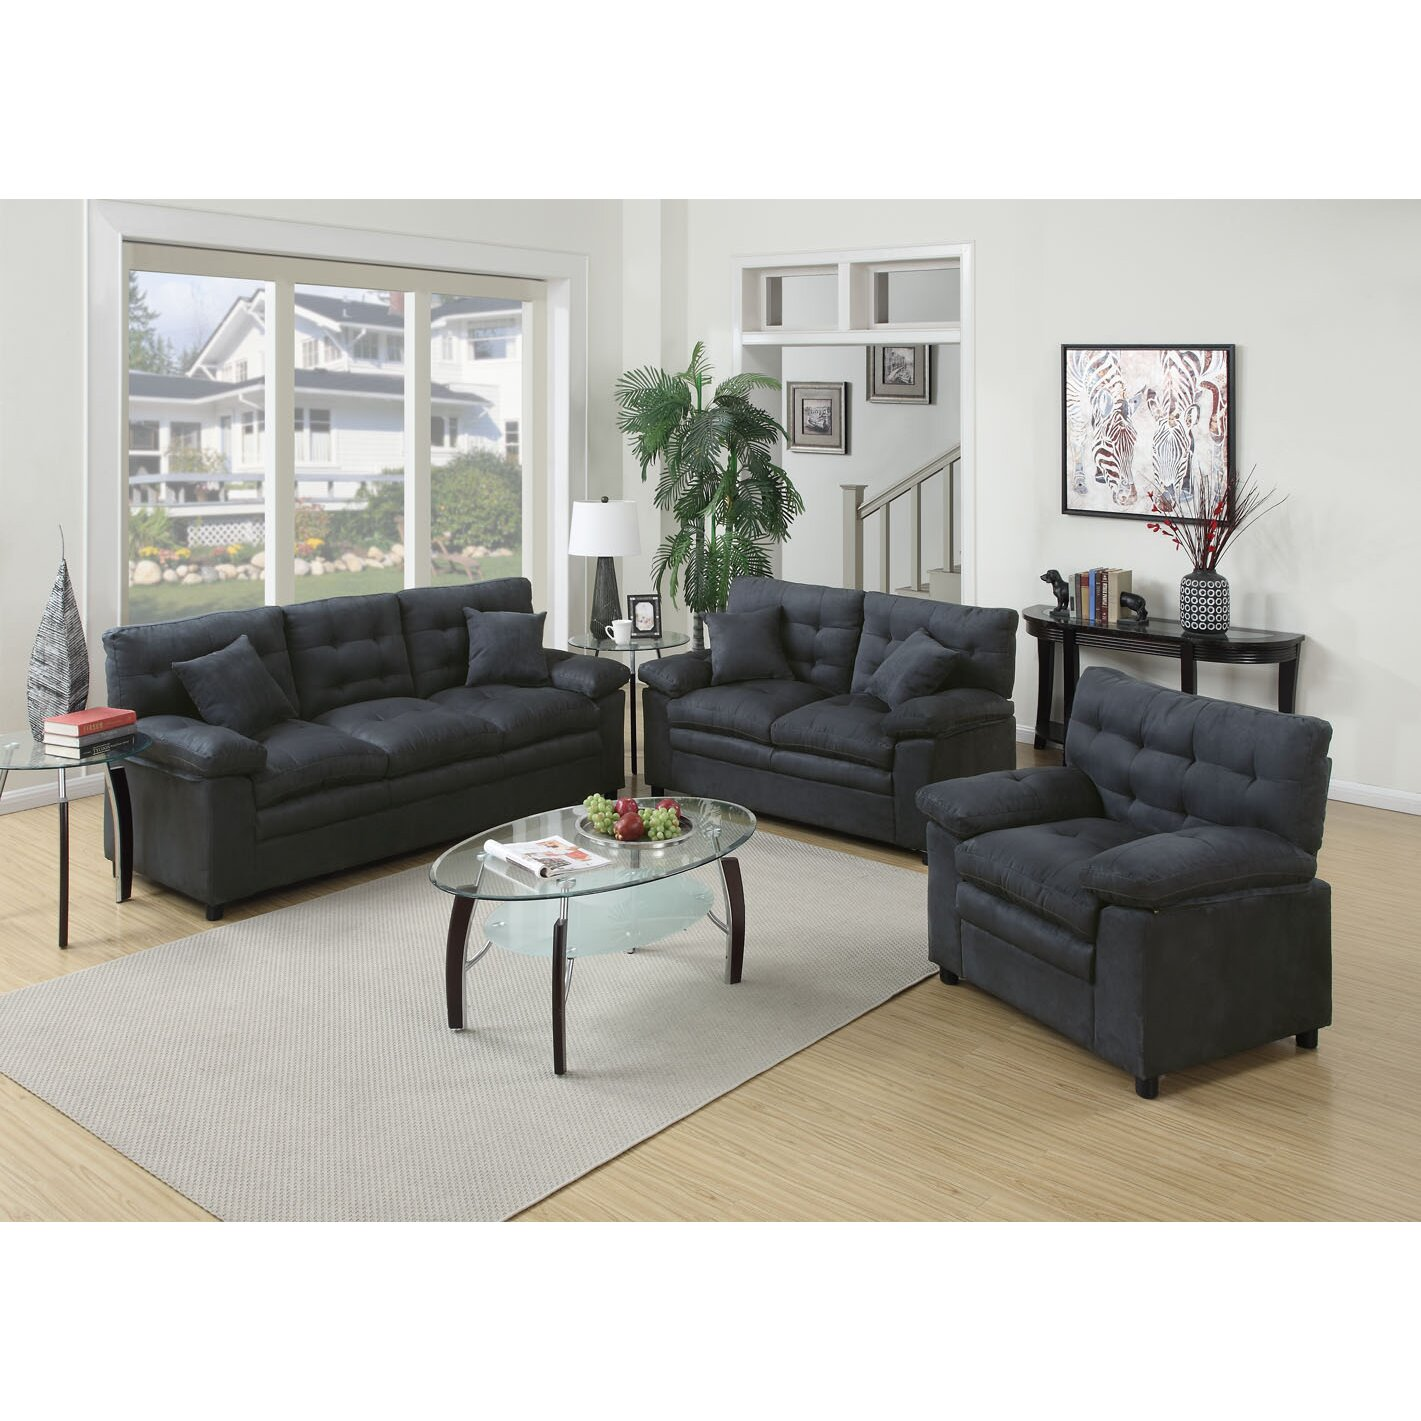 Poundex bobkona colona 3 piece living room set reviews for Living room sets